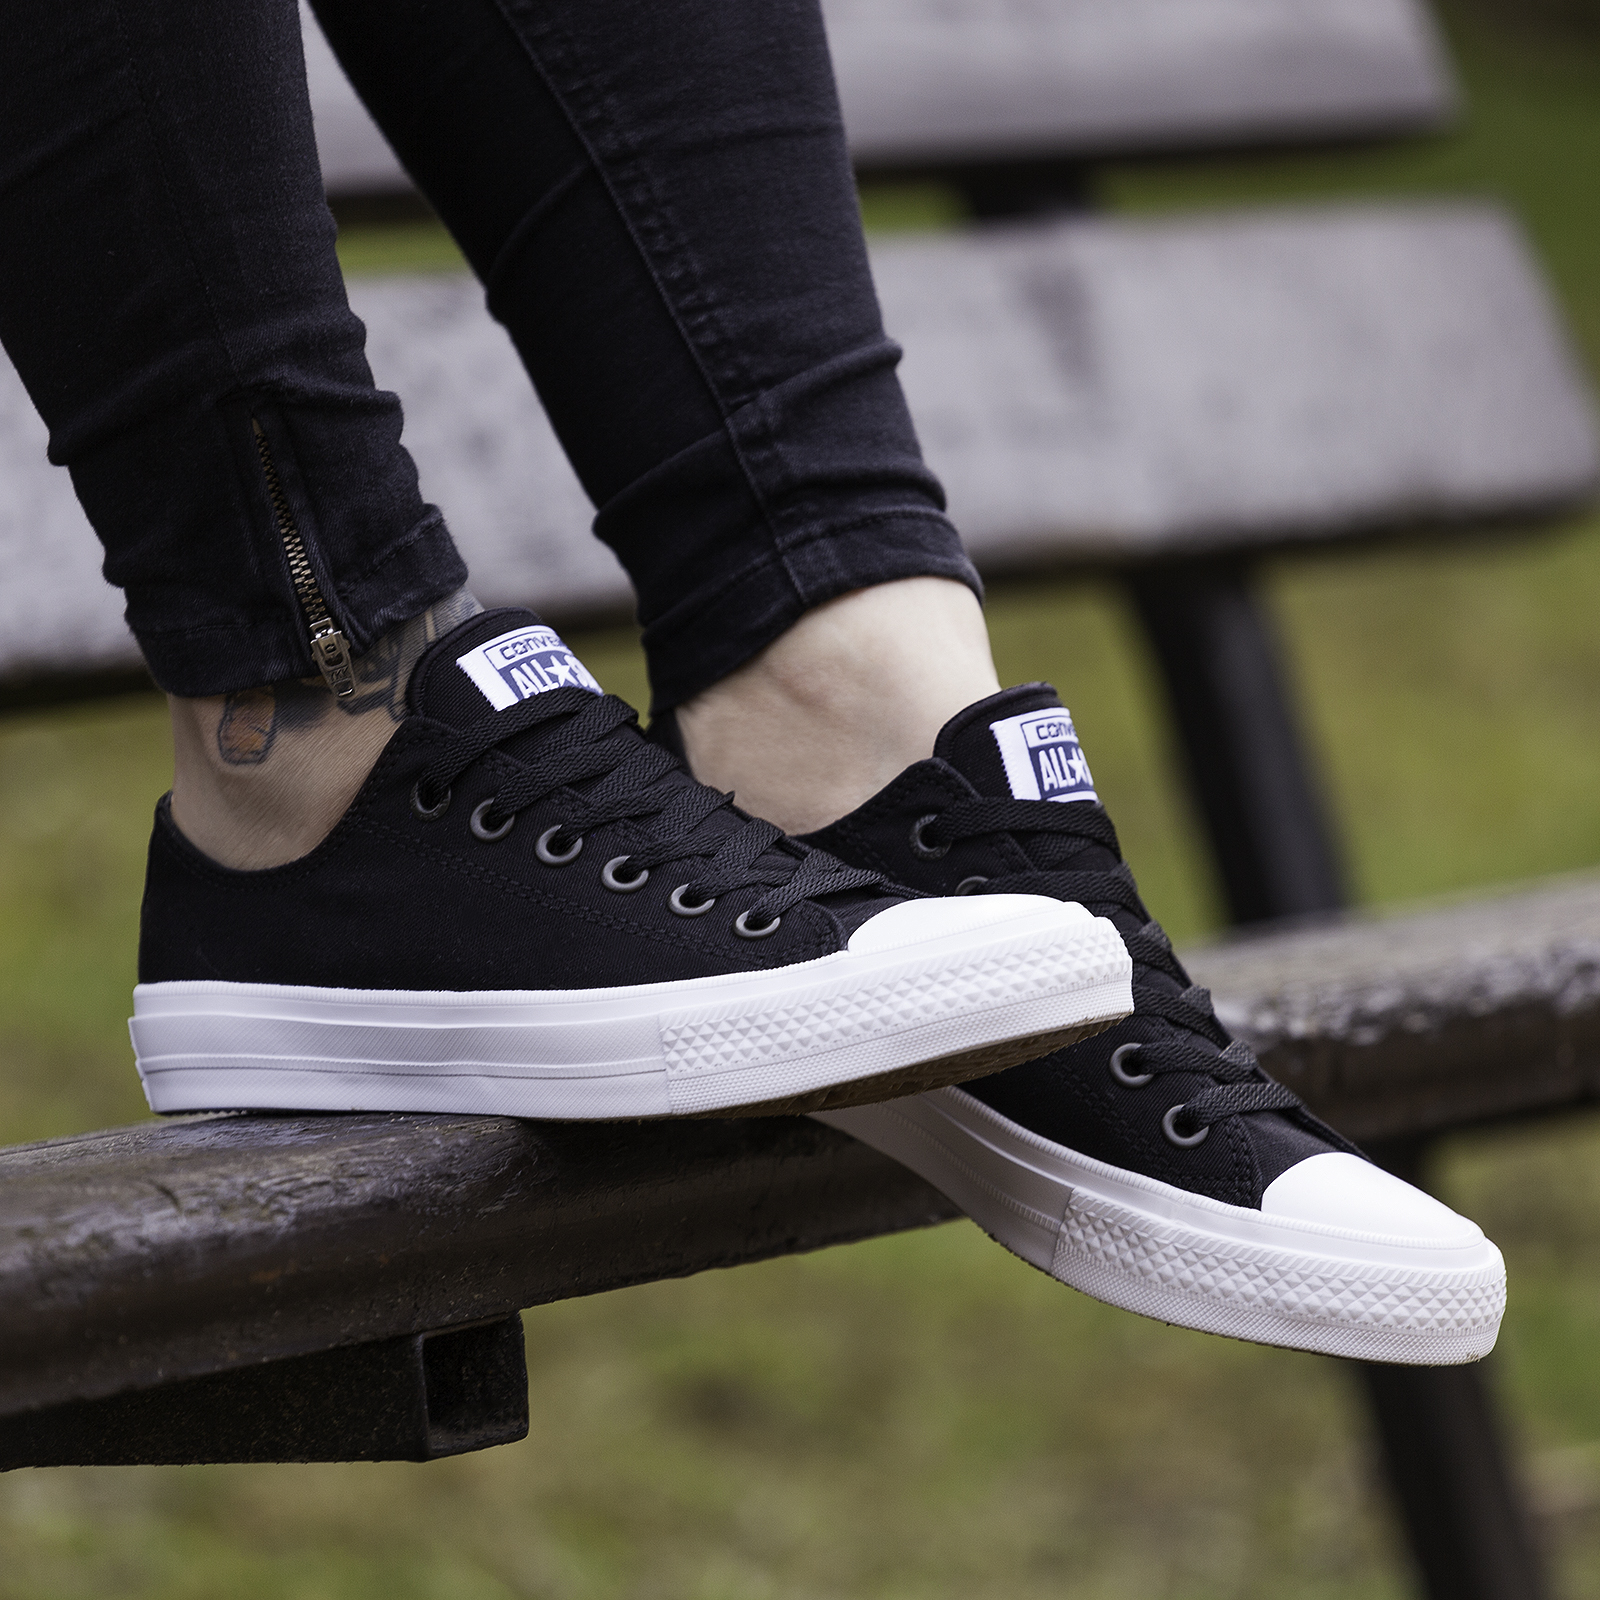 trampki converse 150149 chuck taylor all star ii w sklepie. Black Bedroom Furniture Sets. Home Design Ideas